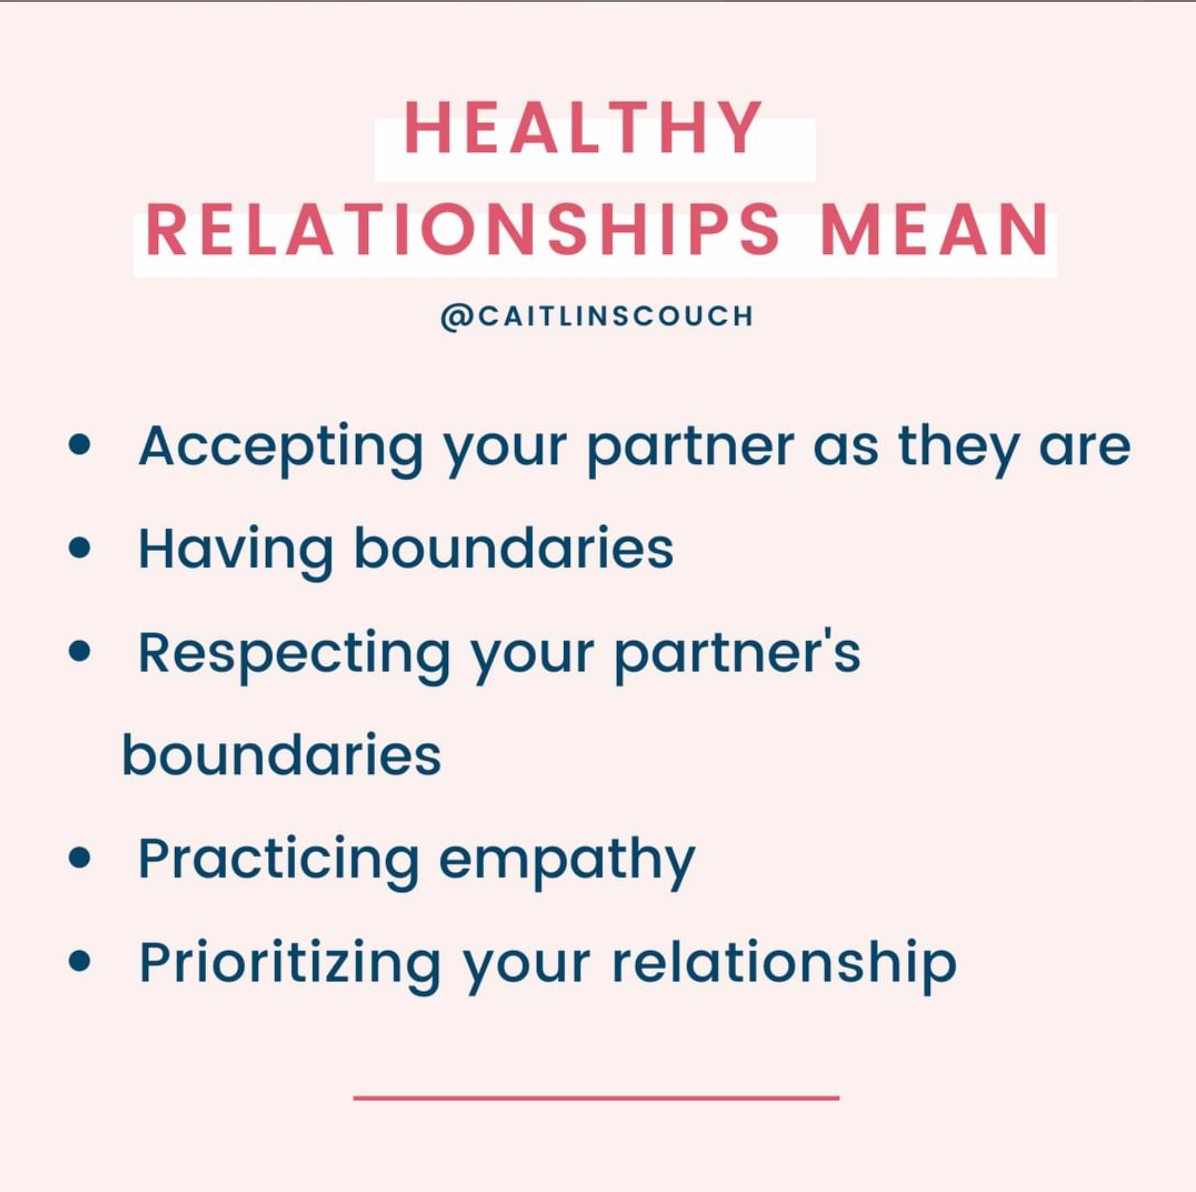 What Does A Healthy Relationship Mean Healthy Relationships Relationship Meaning Relationship Skills